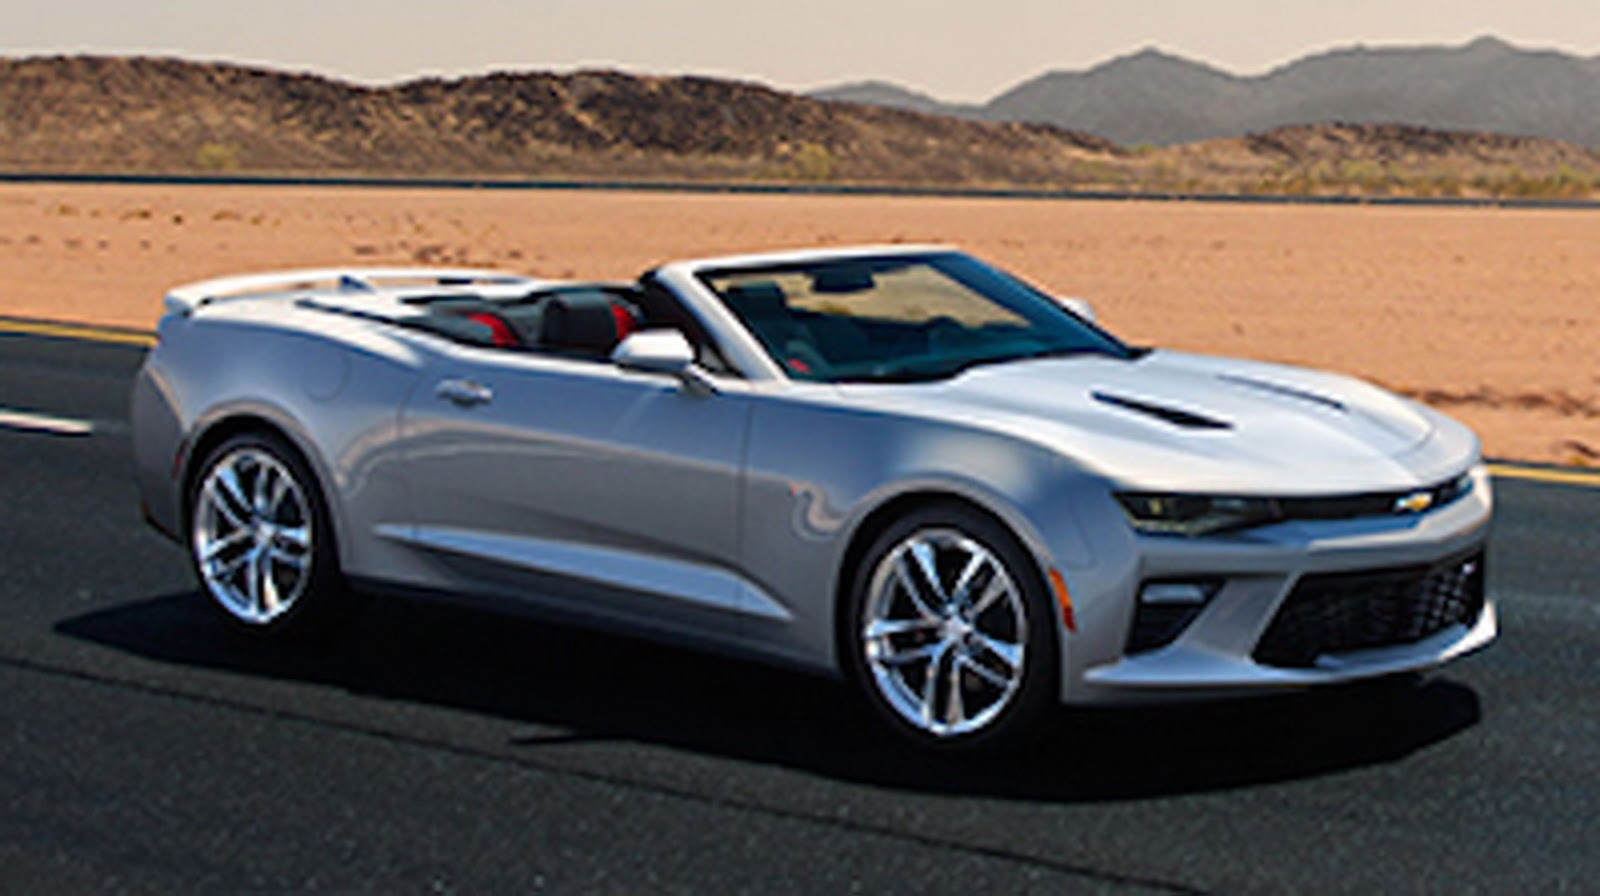 New 2016 Camaro Convertible Photos Appear On Chevy S Site